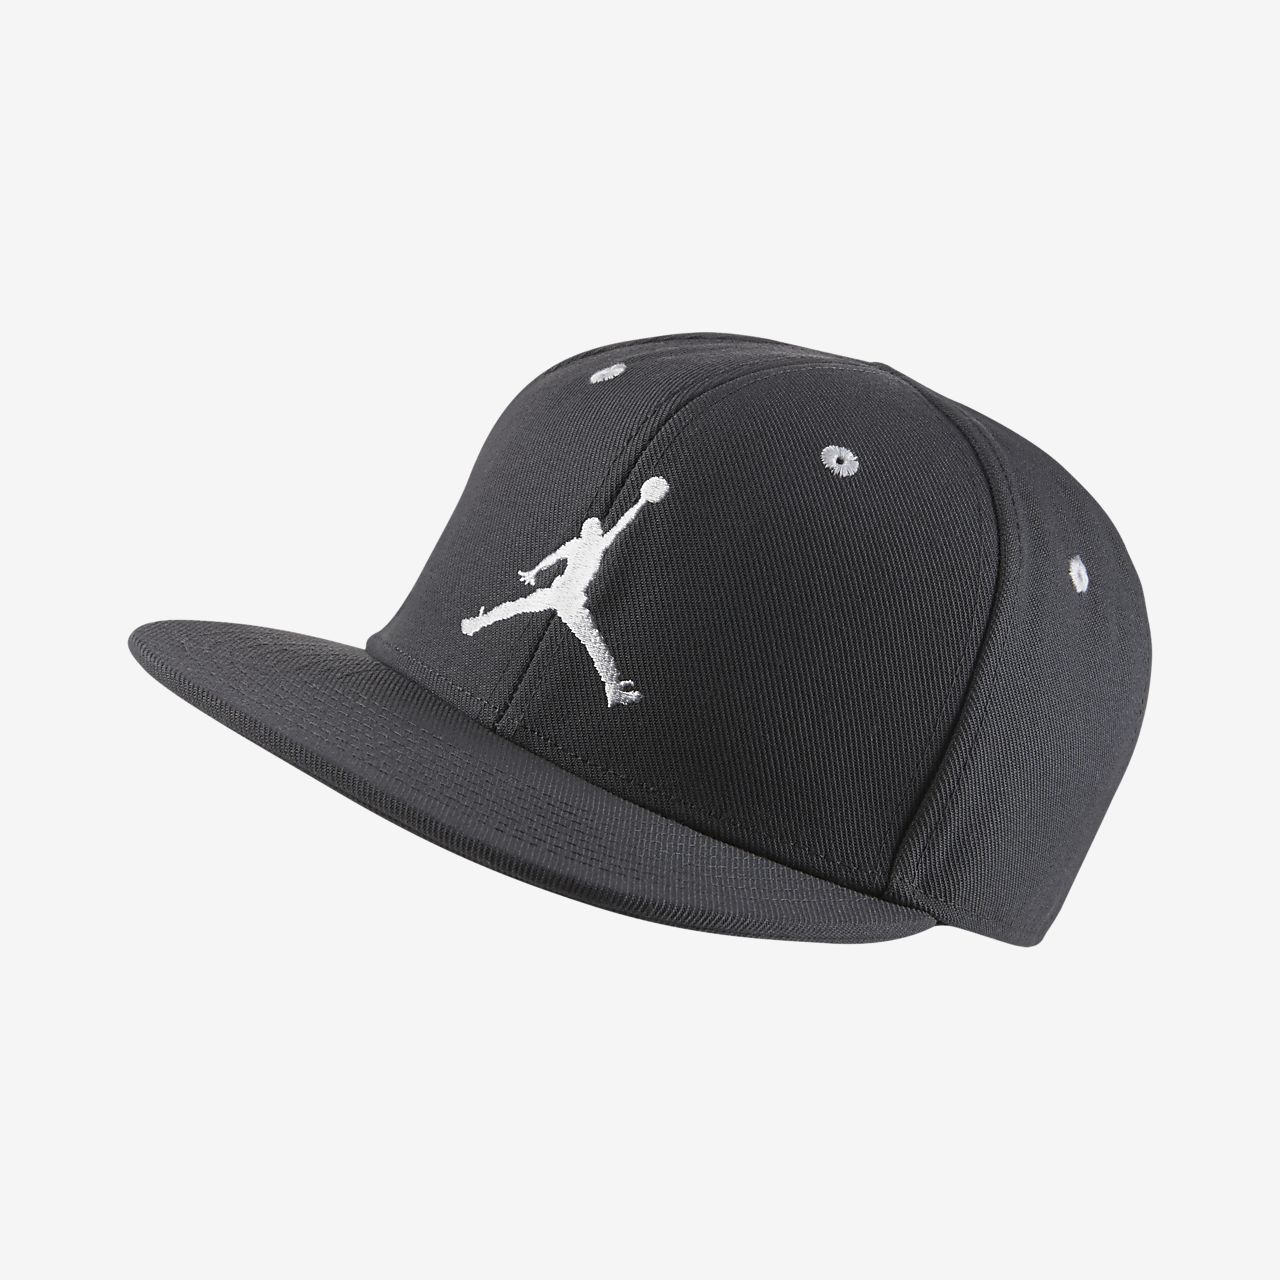 ... Jordan Jumpman Snapback Little Kids' Adjustable Hat